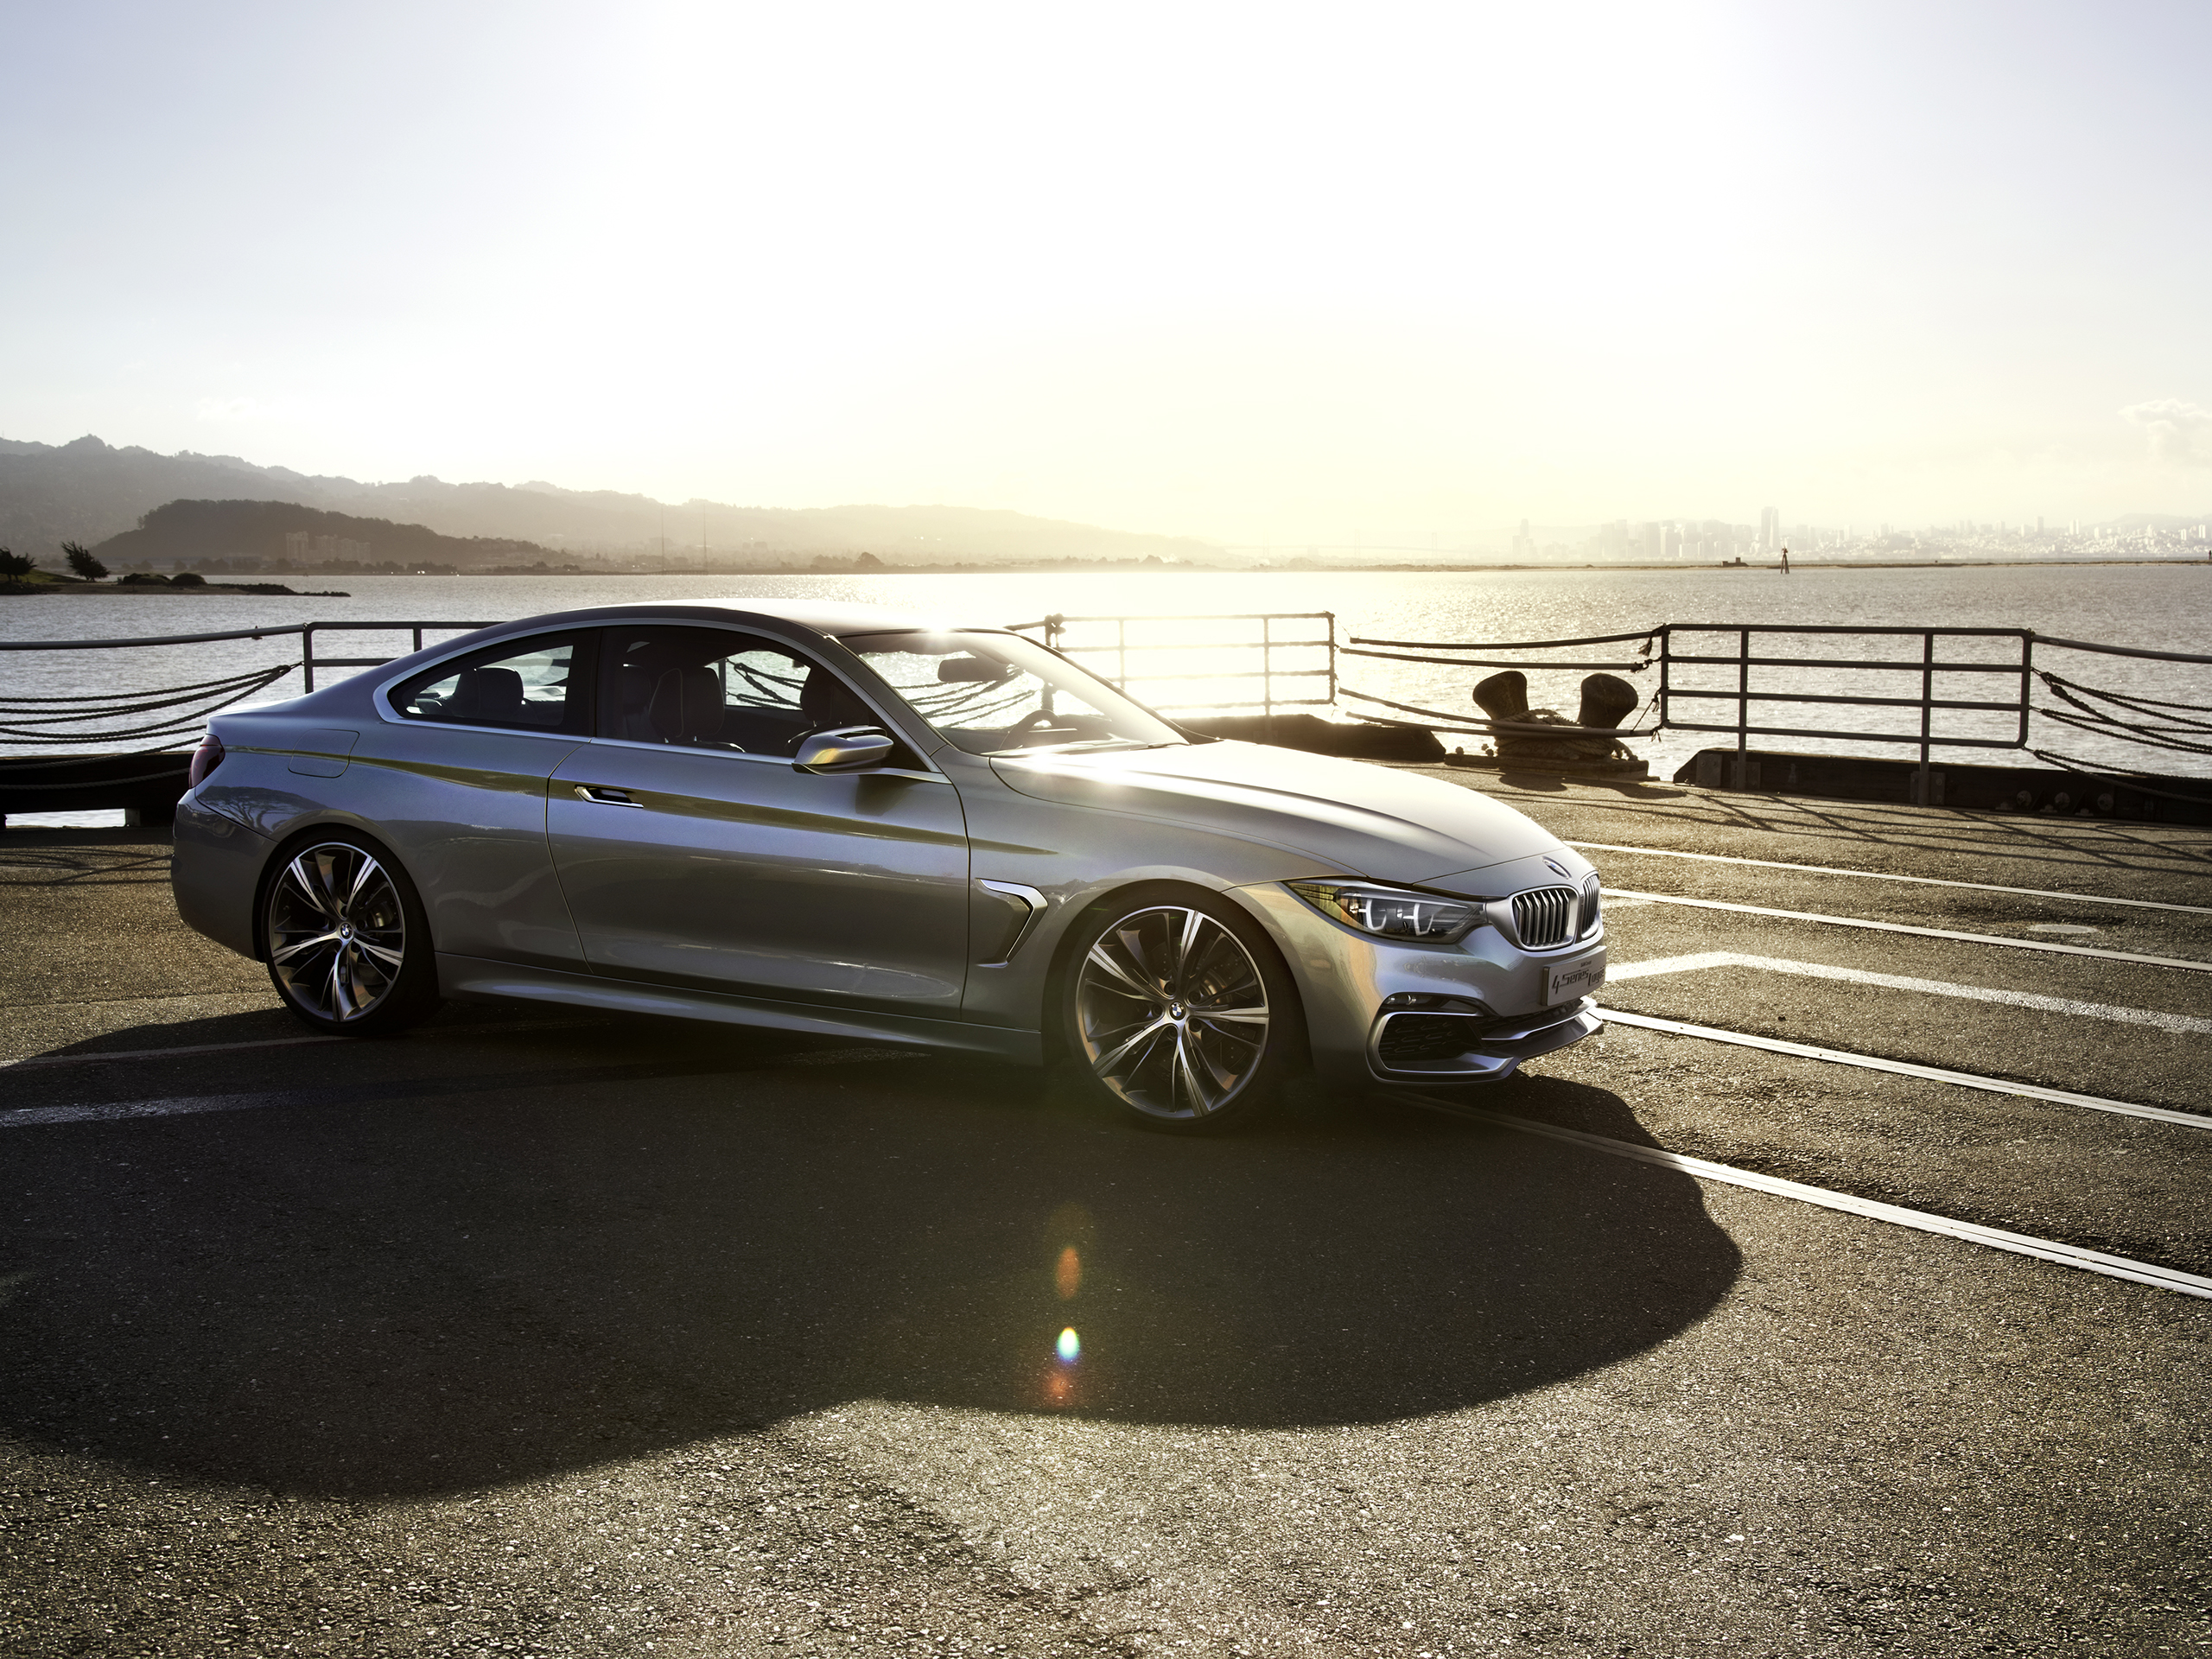 bmw 4er coupe exterior free desktop wallpapers for widescreen hd and mobile. Black Bedroom Furniture Sets. Home Design Ideas